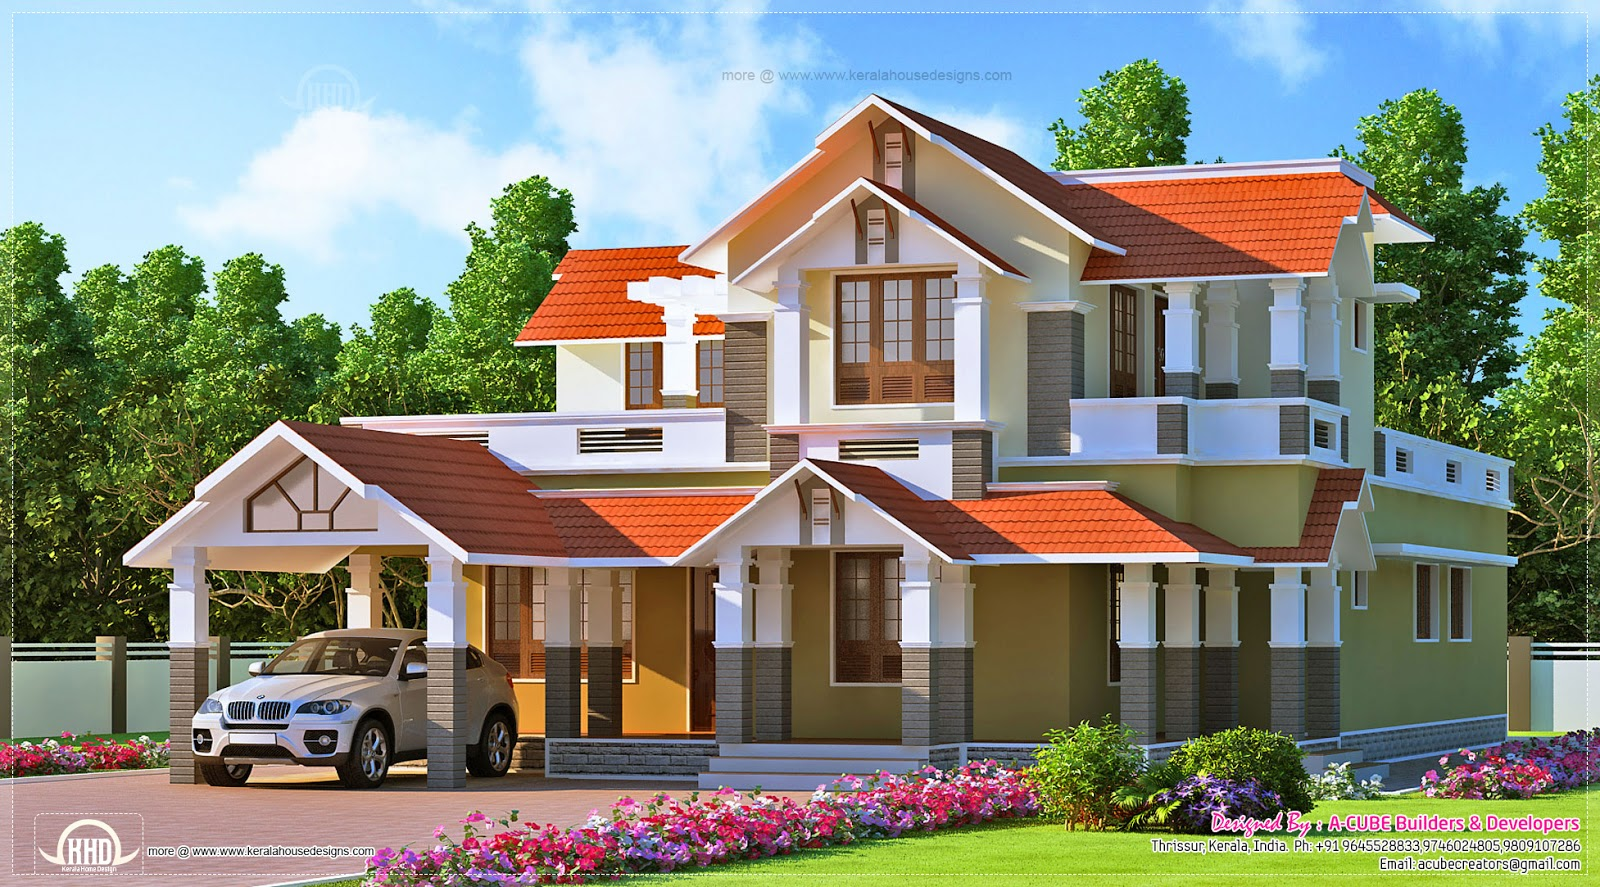 Eco friendly houses kerala style dream home design for Dream home design